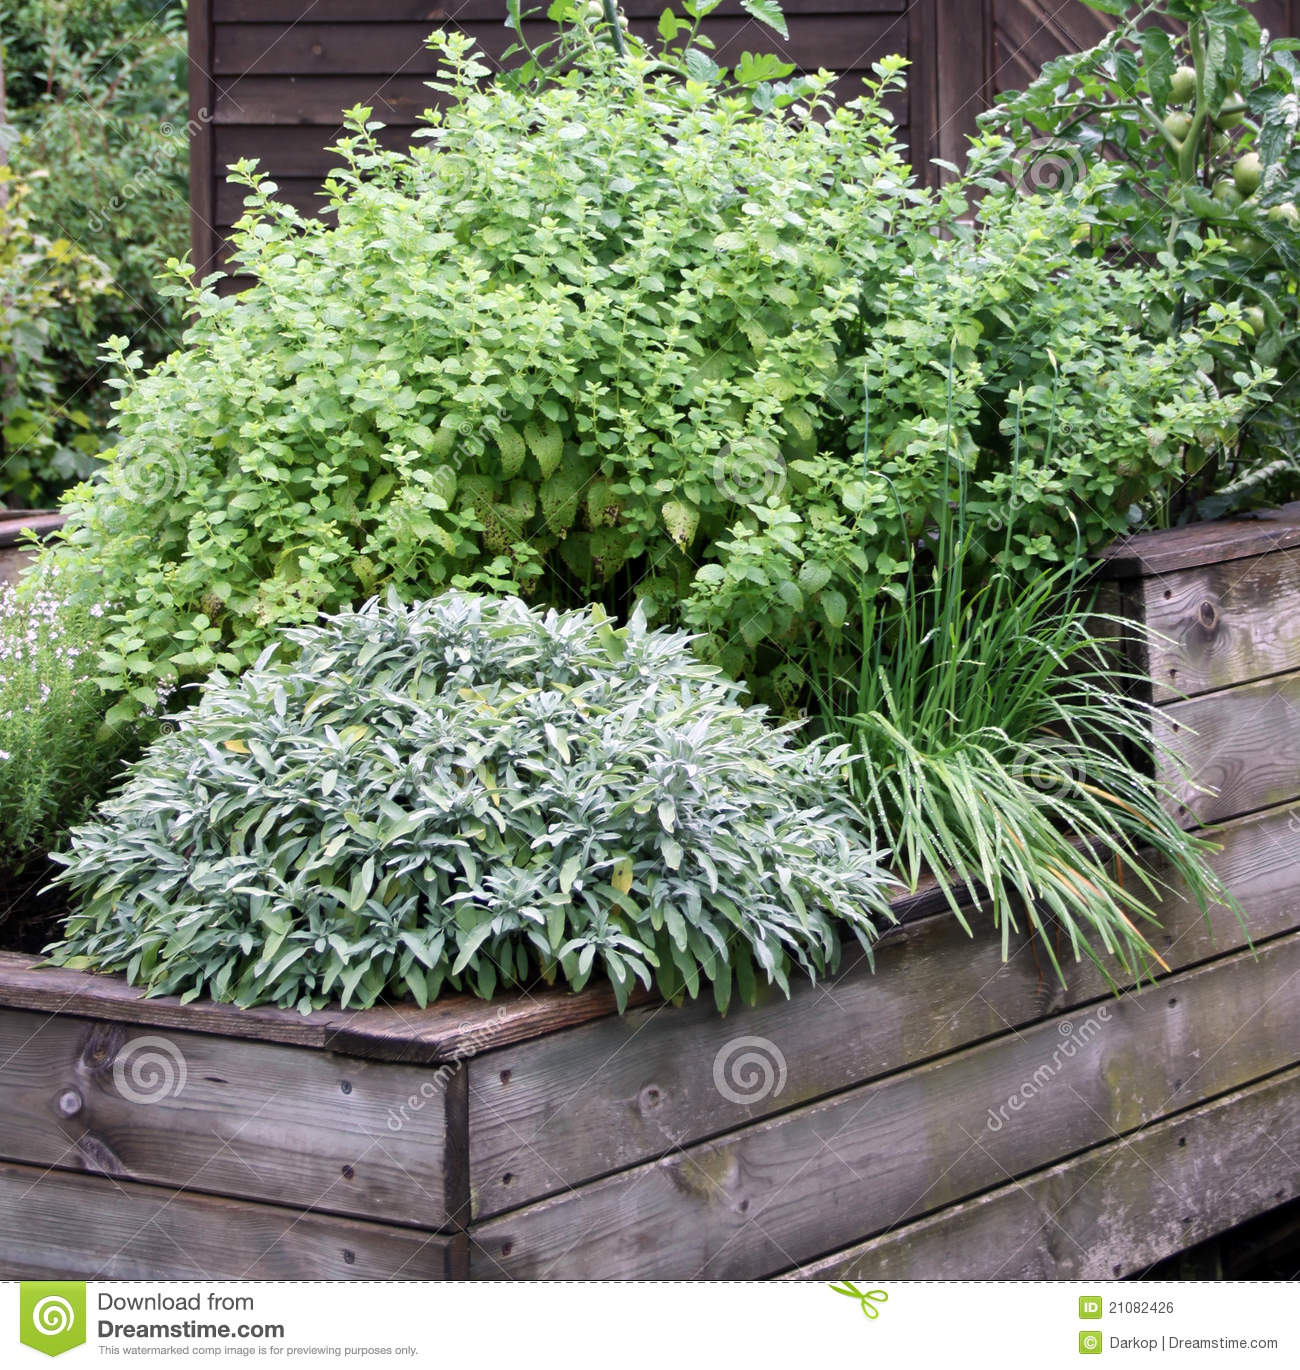 Colorbond Raised Garden Beds Stratco Herbs Plant On The Raised Garden Bed Stock Photo Image